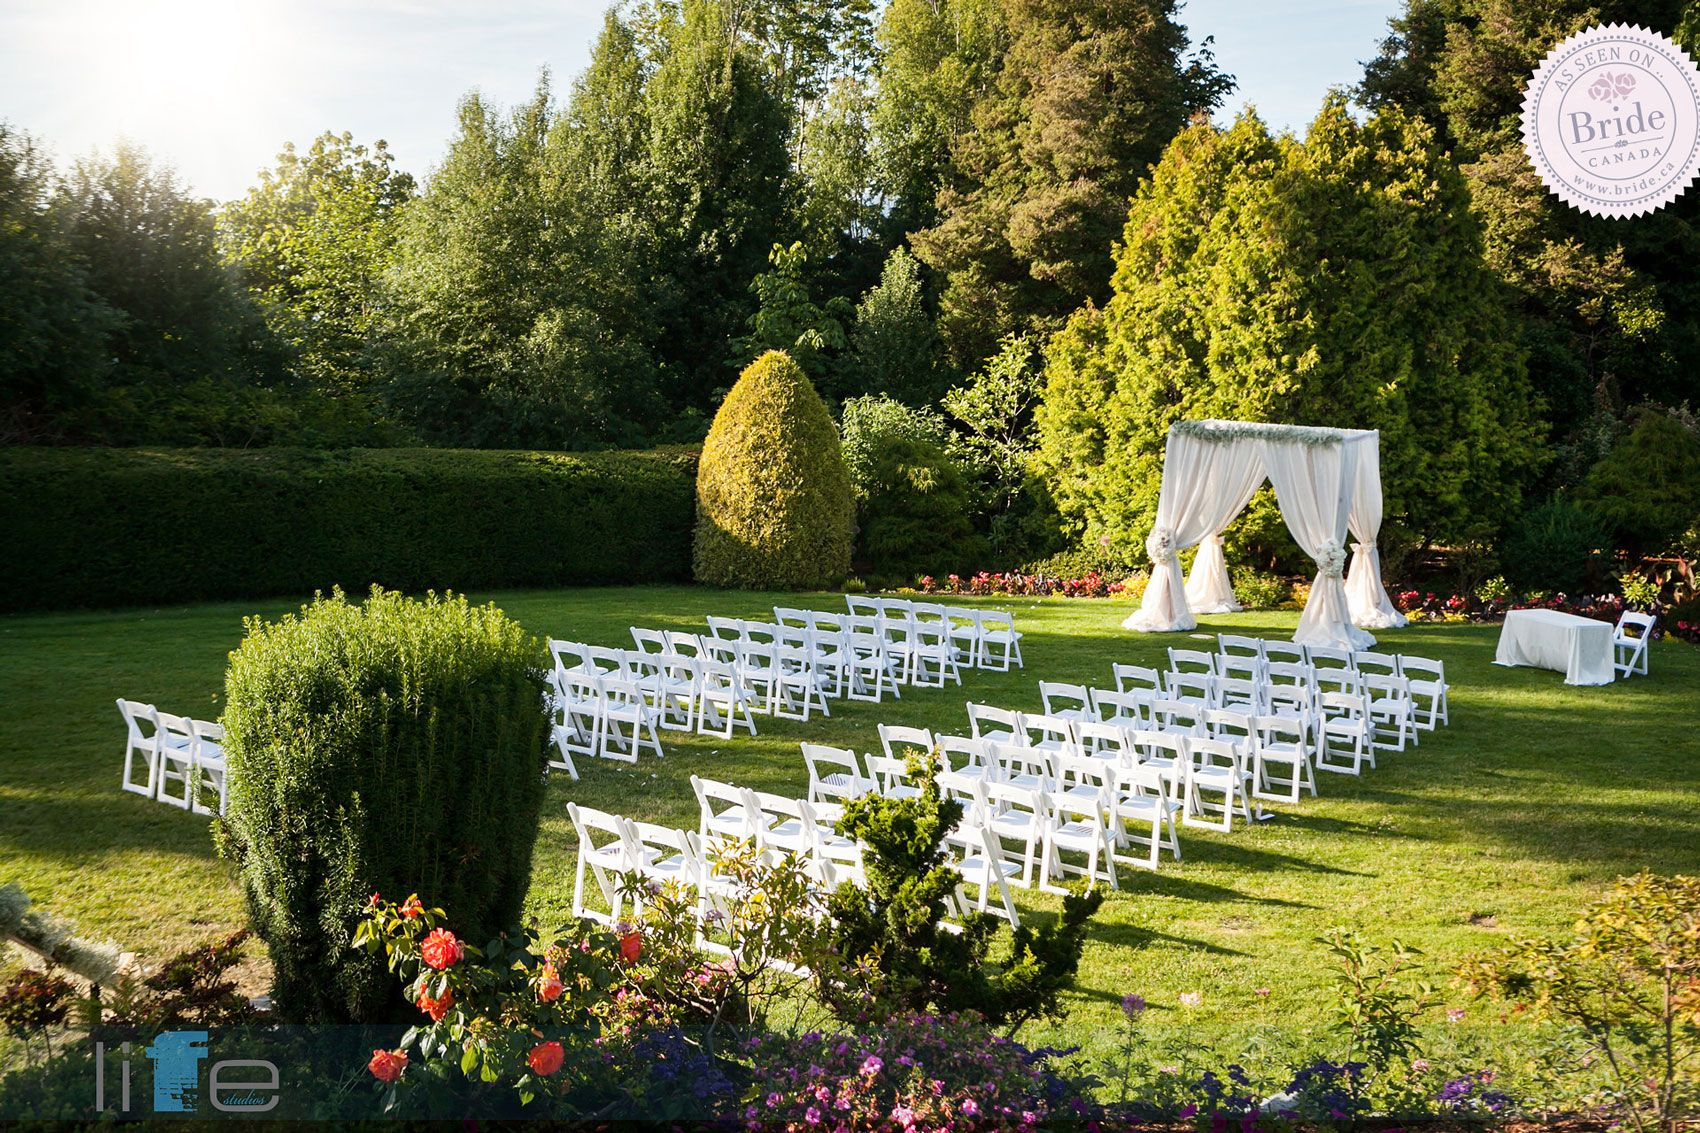 Outdoor Wedding Venue Photo Gallery: The Beautiful Grounds Of Cecil Green Park House Offer One